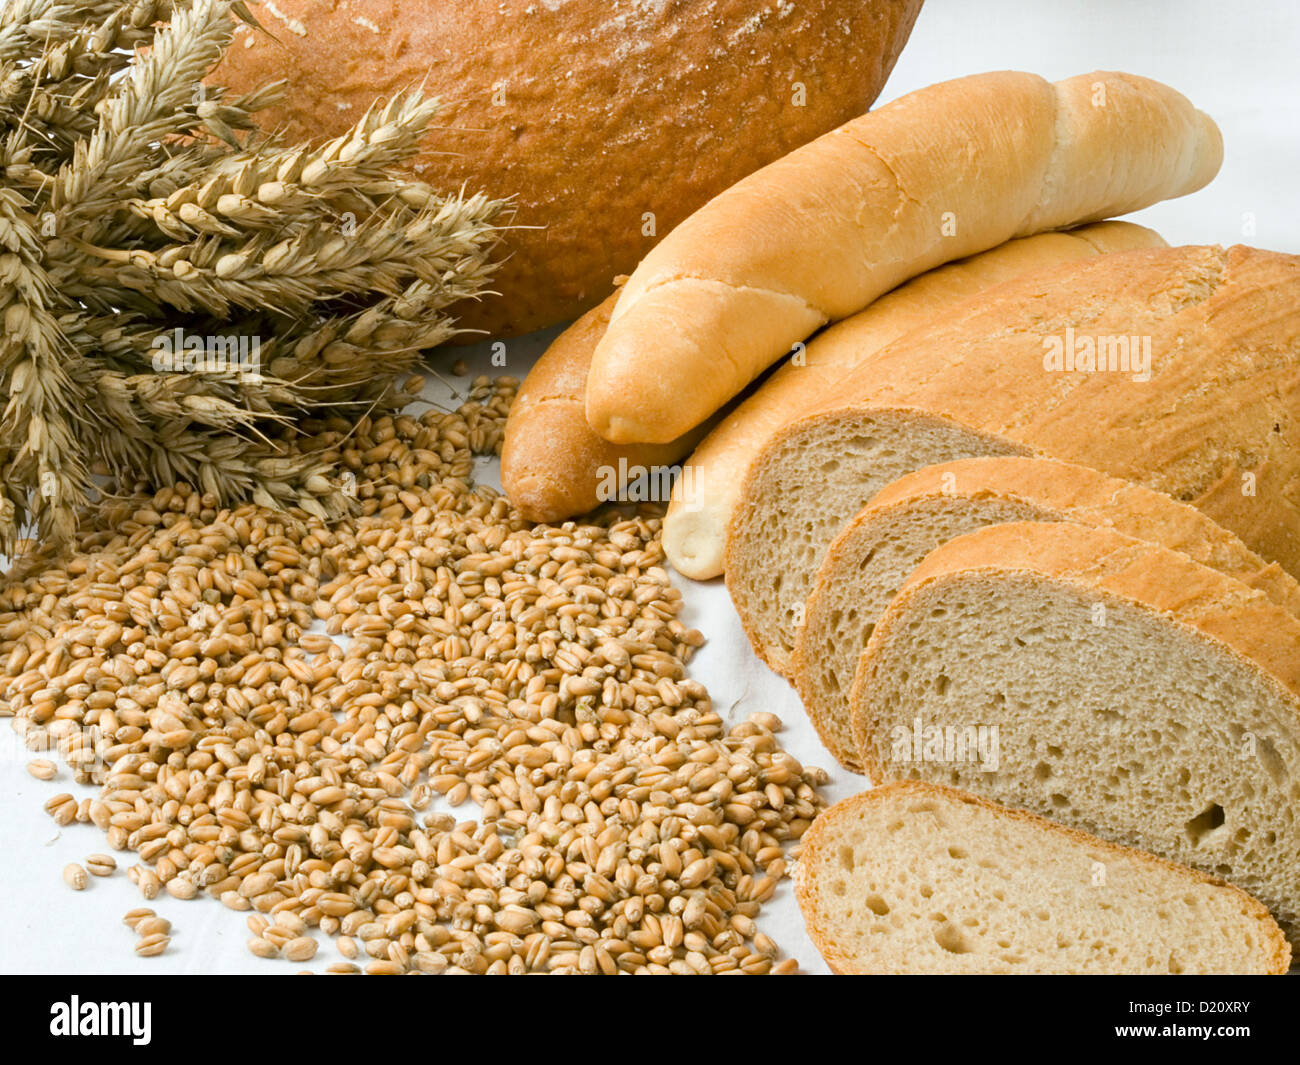 Cereal and bakery products isolated on a white - Stock Image